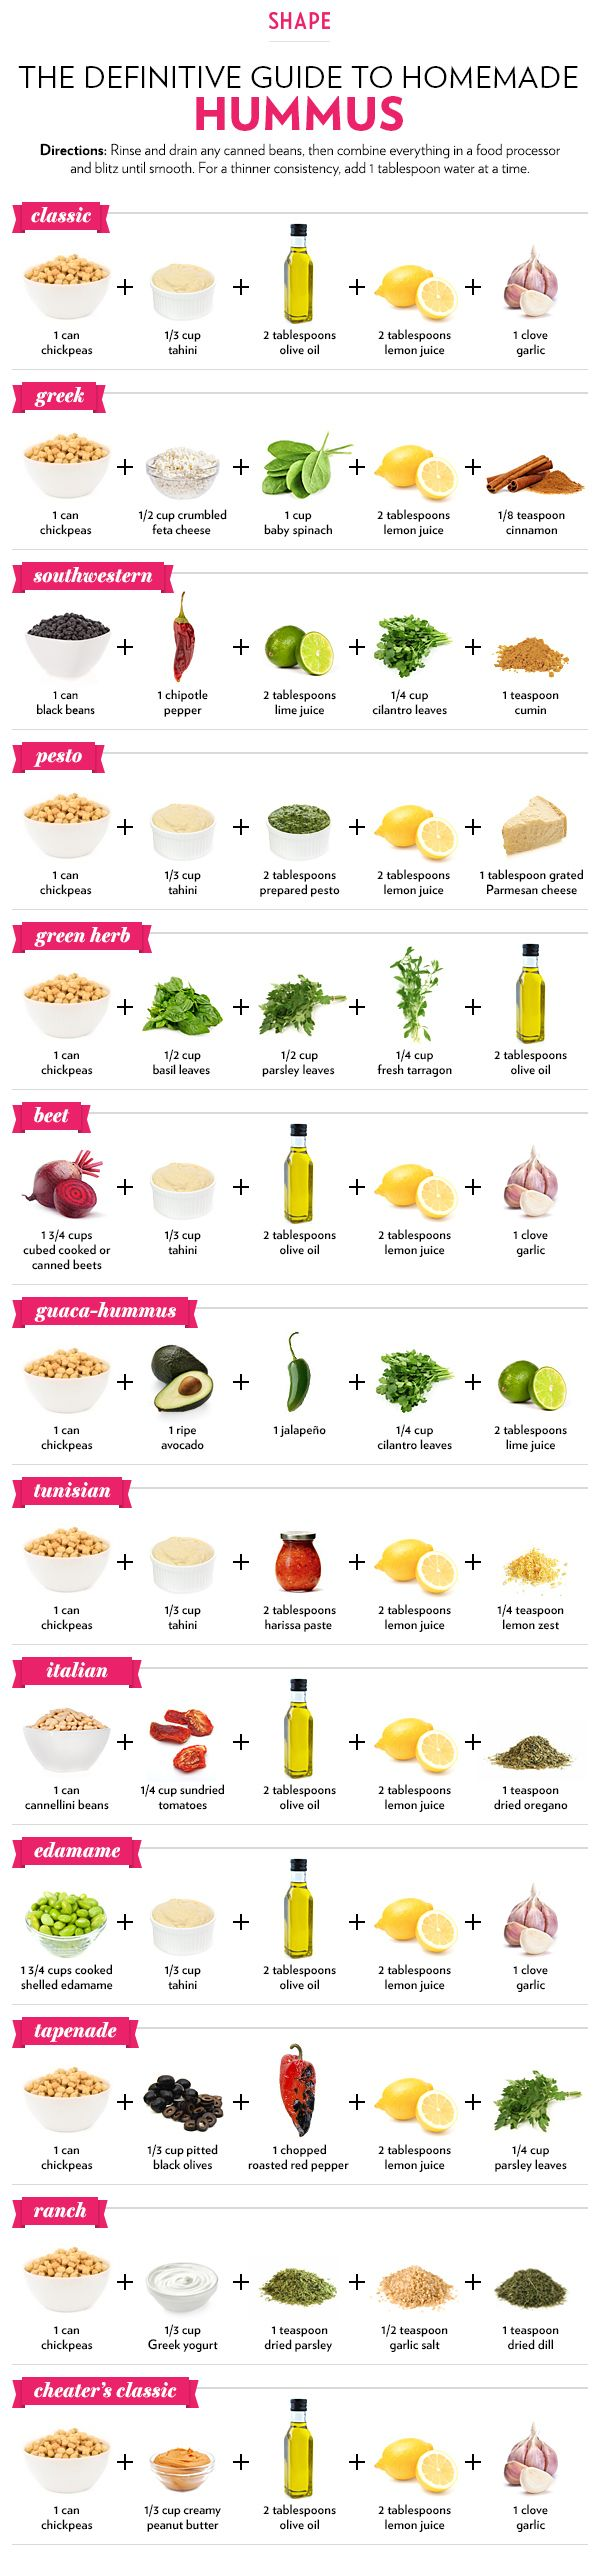 The Ultimate Guide To Homemade Hummus Infographic